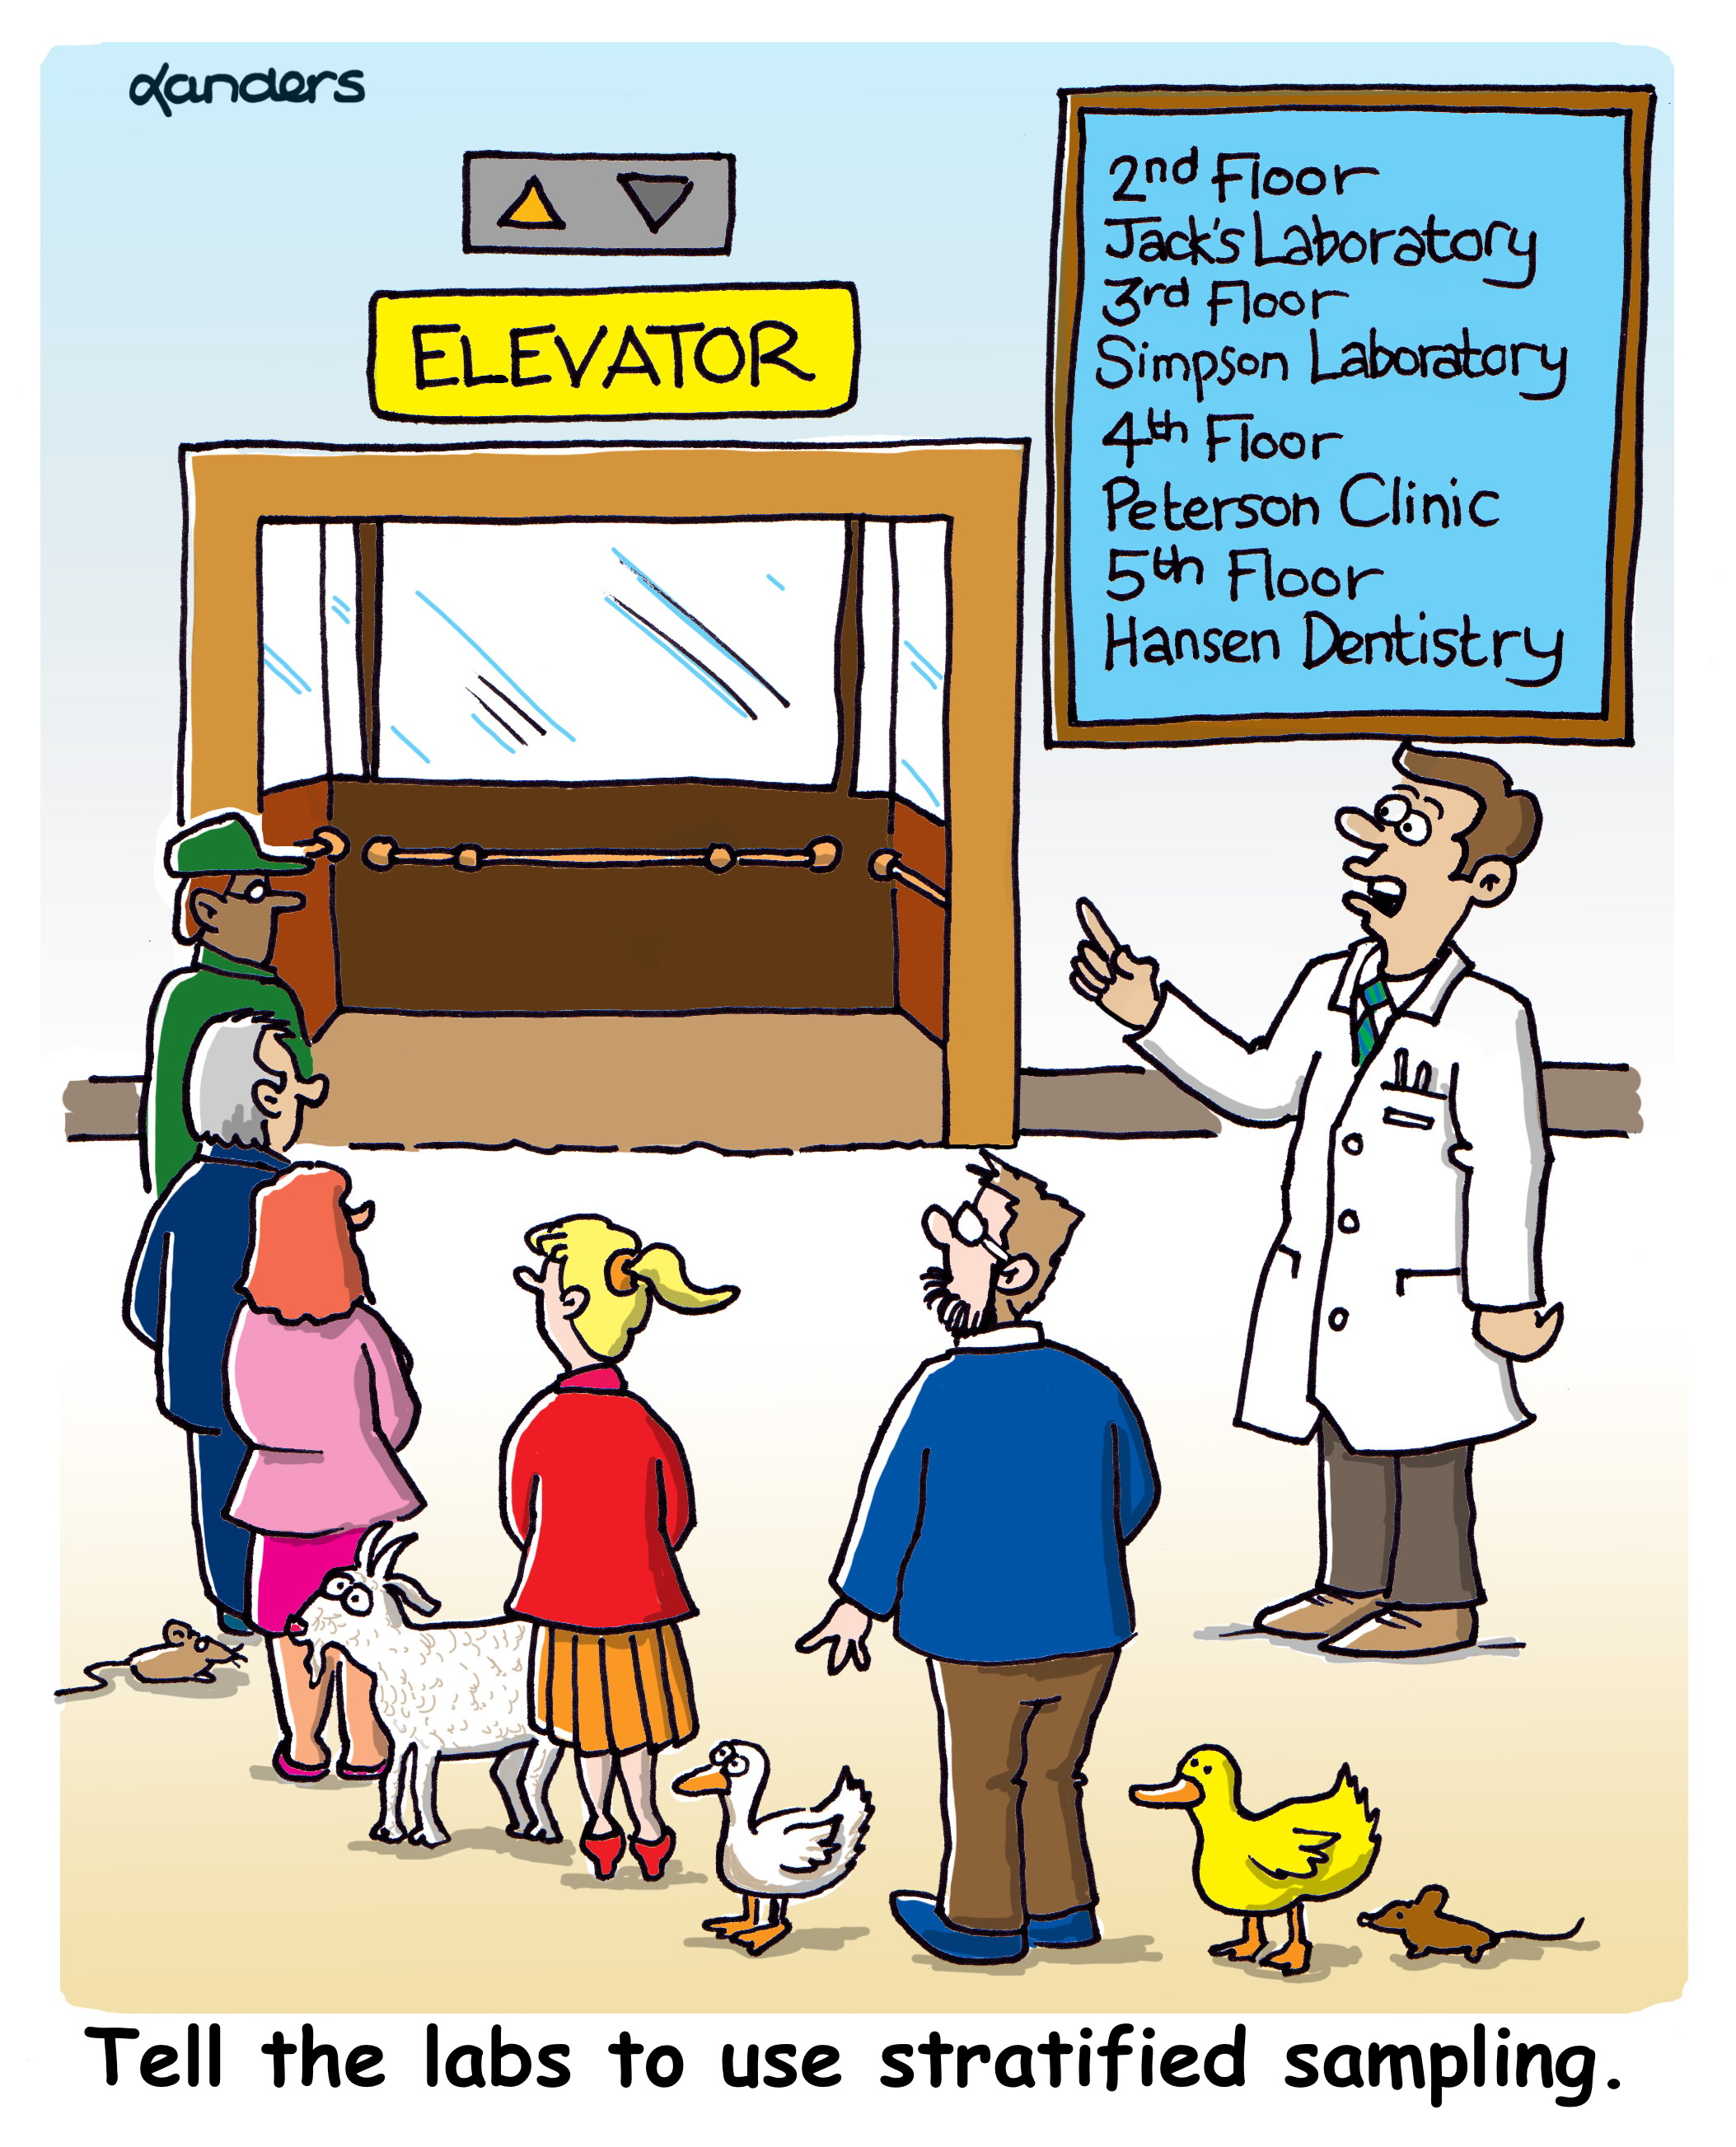 Cartoon showing people and various animals approaching an elevator